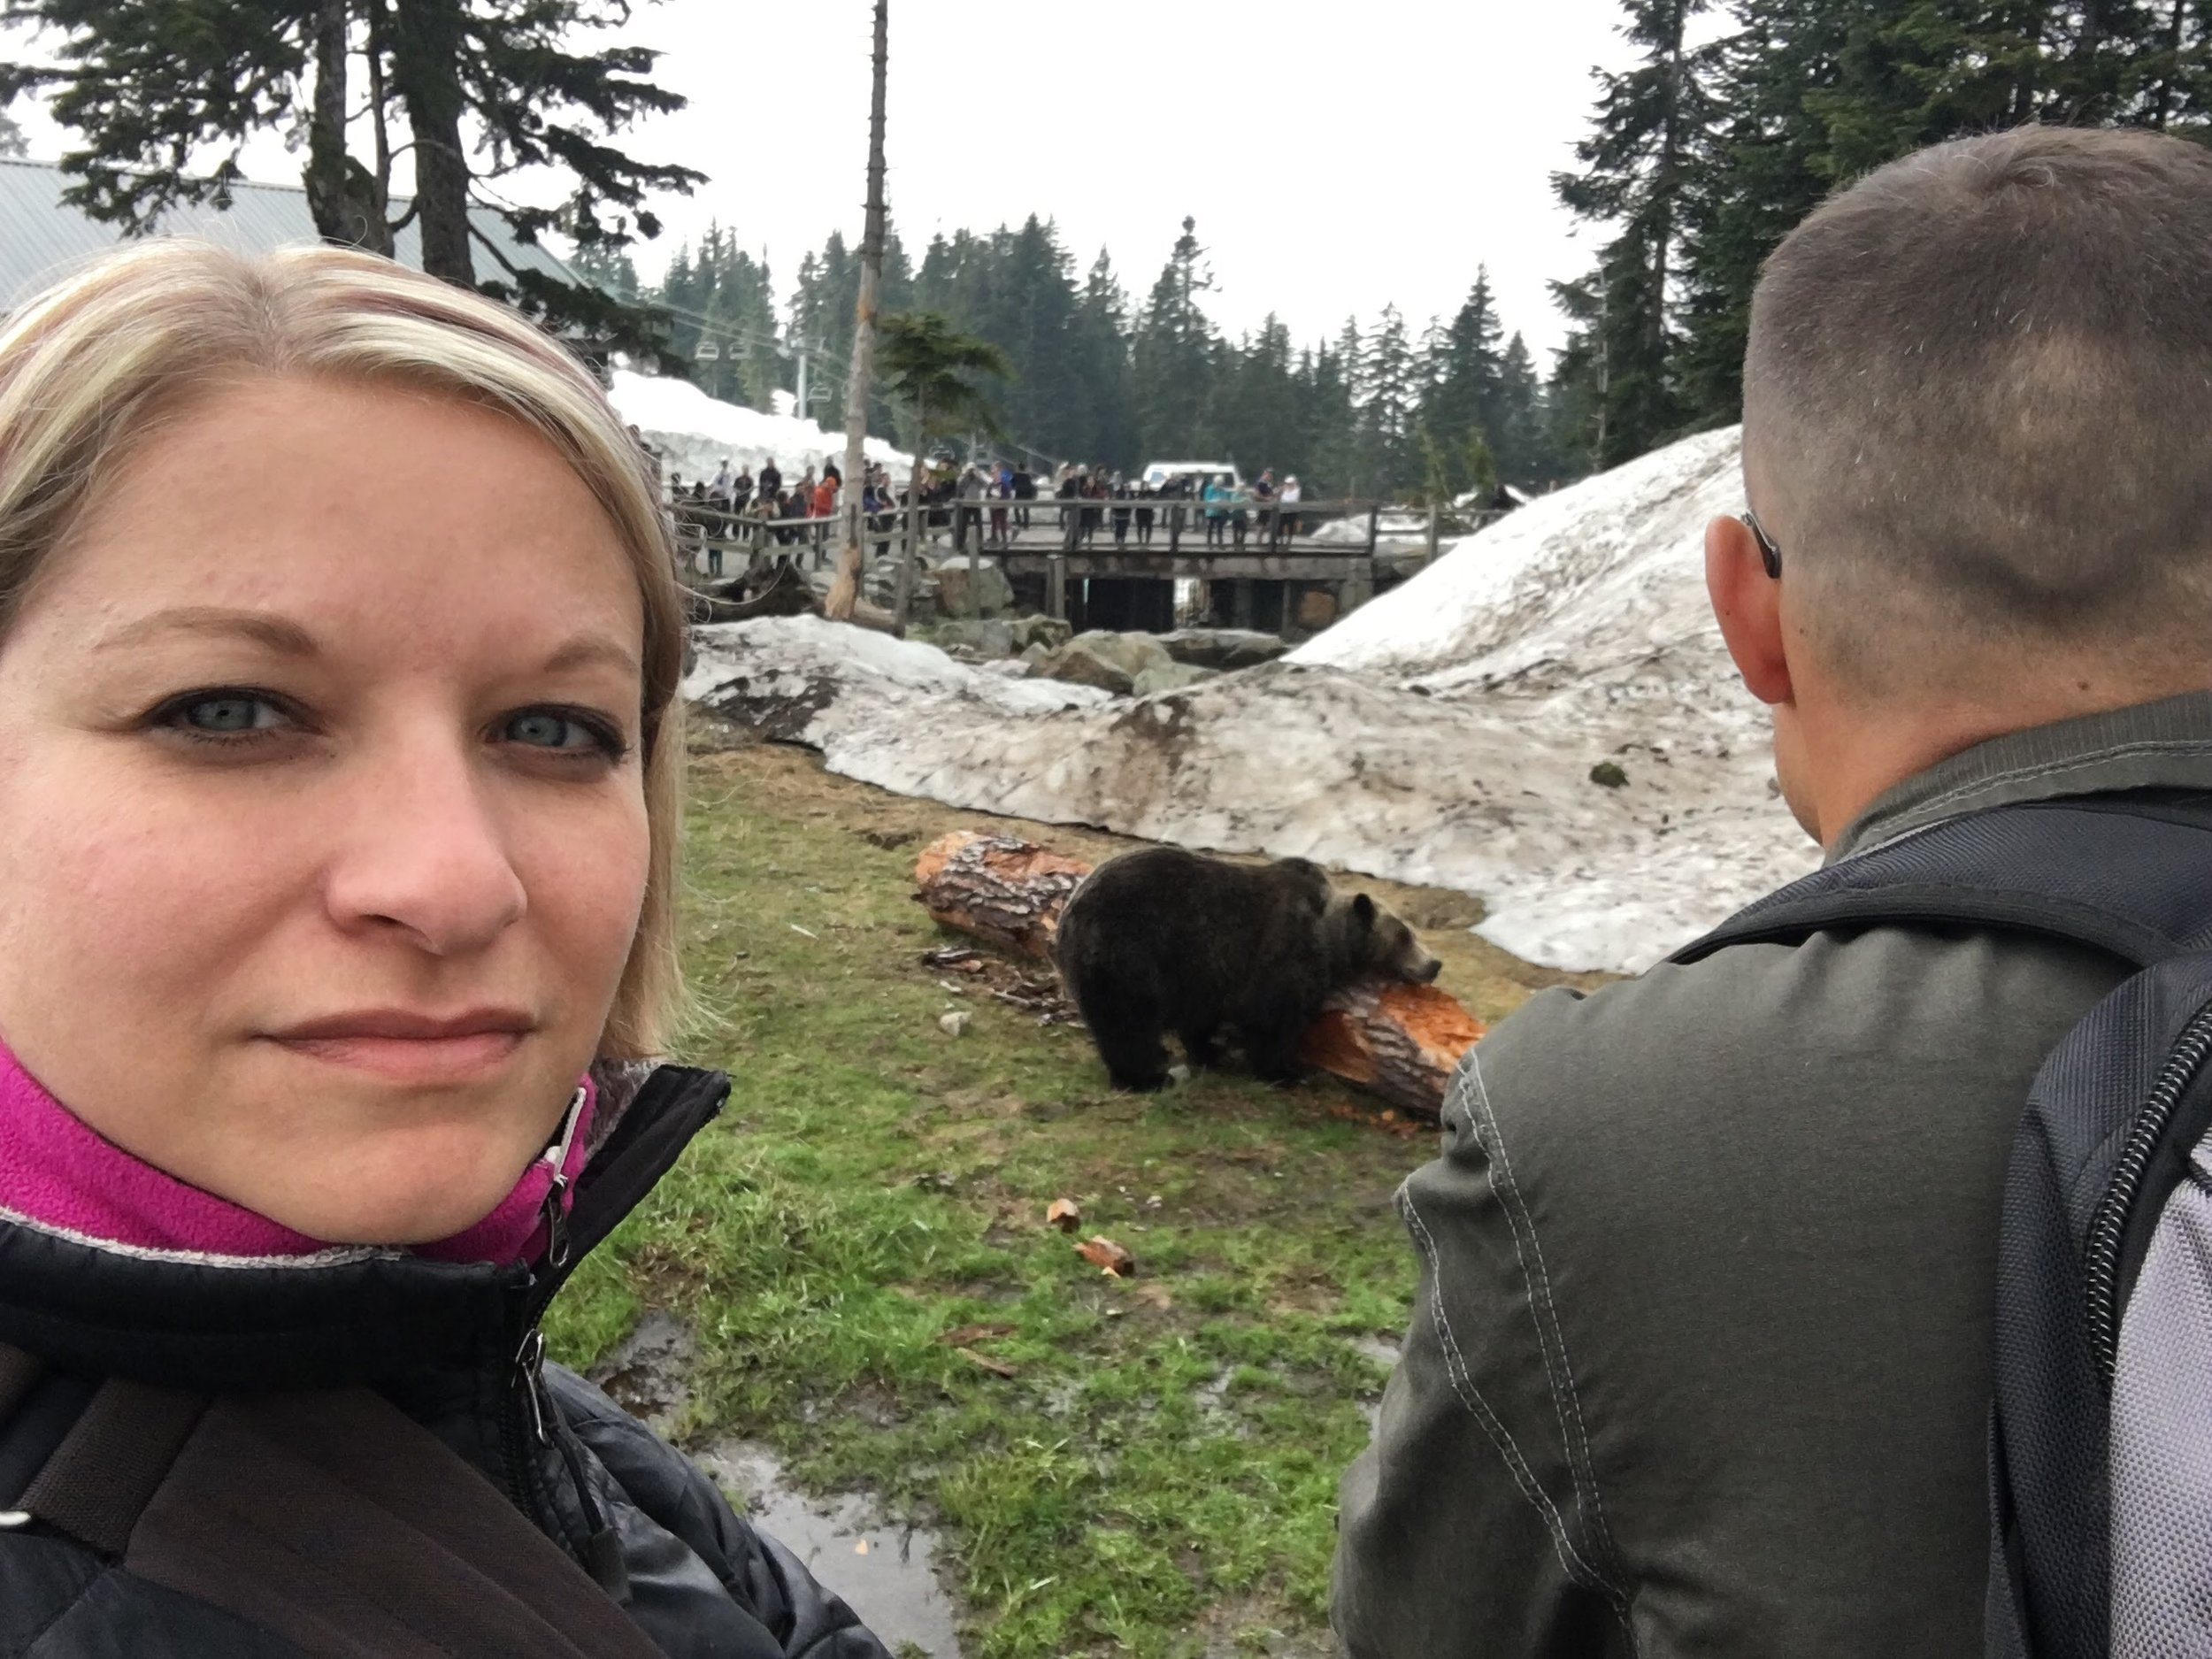 Thought it would be appropriate to share this picture of me at a bear habitat on Grouse Mountain in Vancouver. Bears are beautiful creatures. I picture this guy when I think about my bear brain.